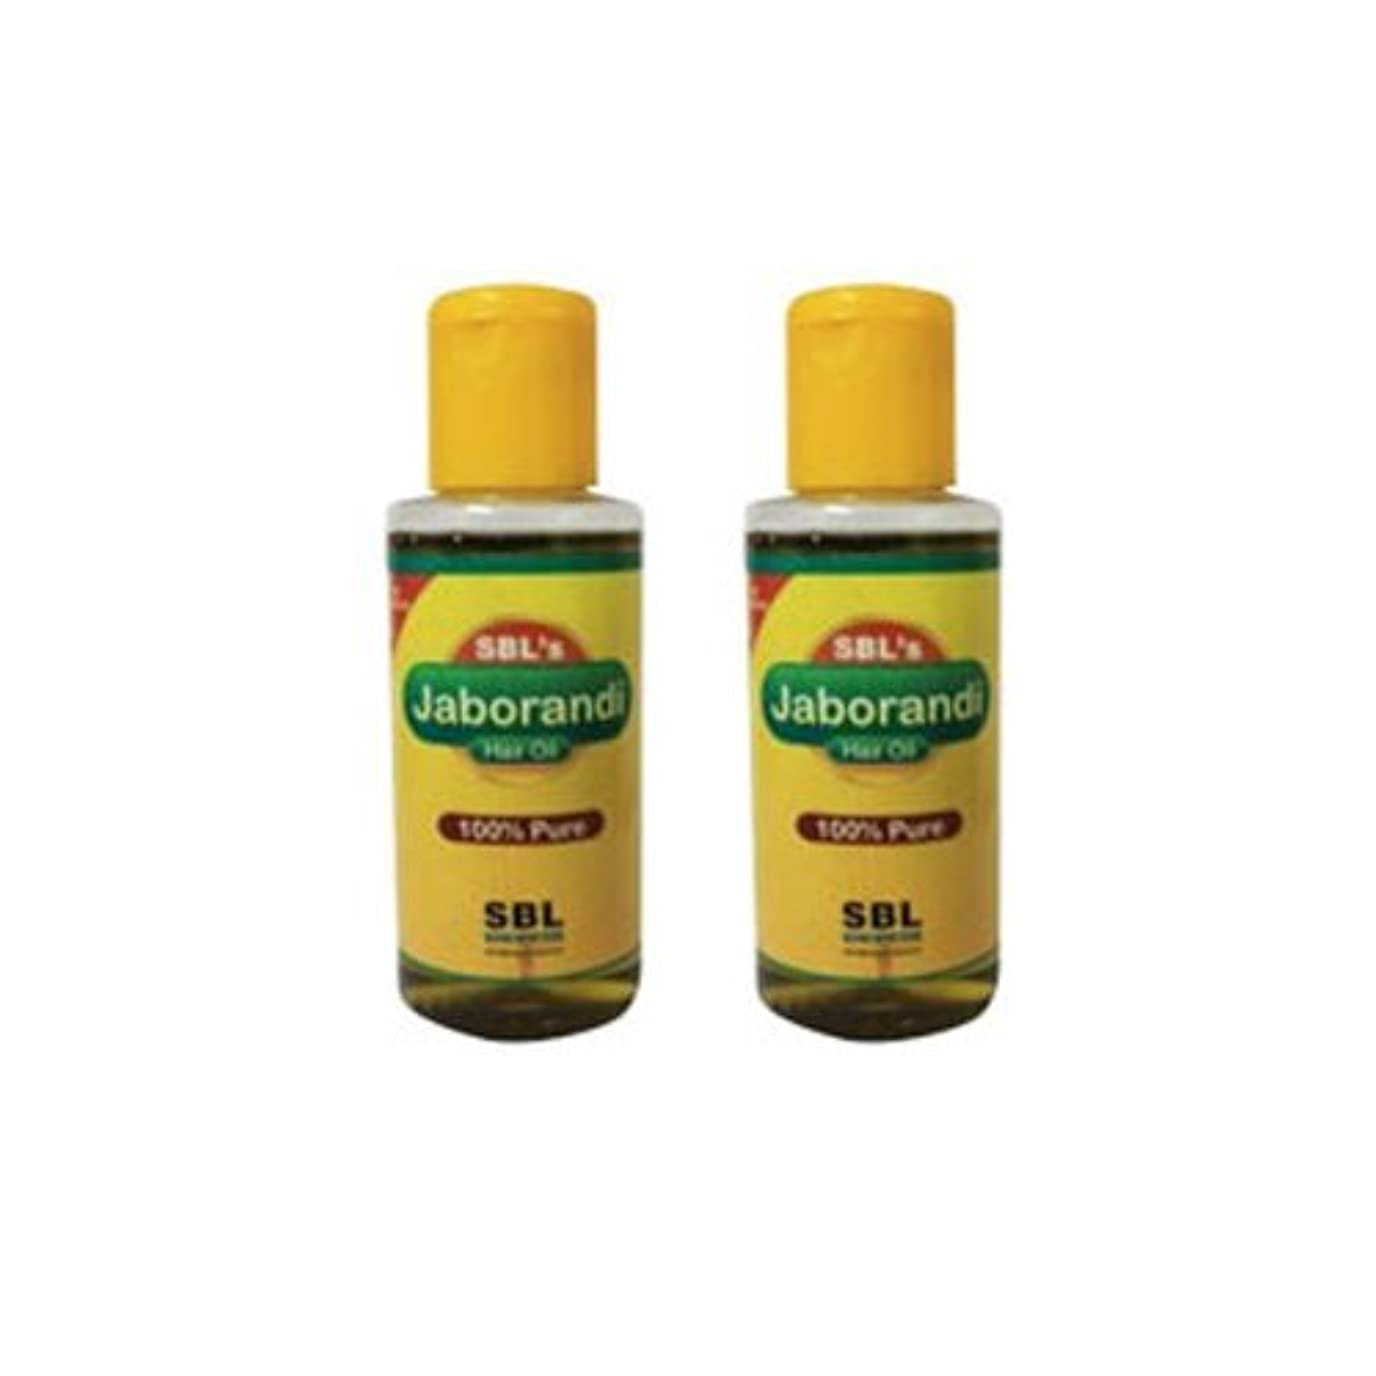 上回る歯車関係2 x Jaborandi Hair Oil. Shipping Only By - USPS / FedEX by SBL